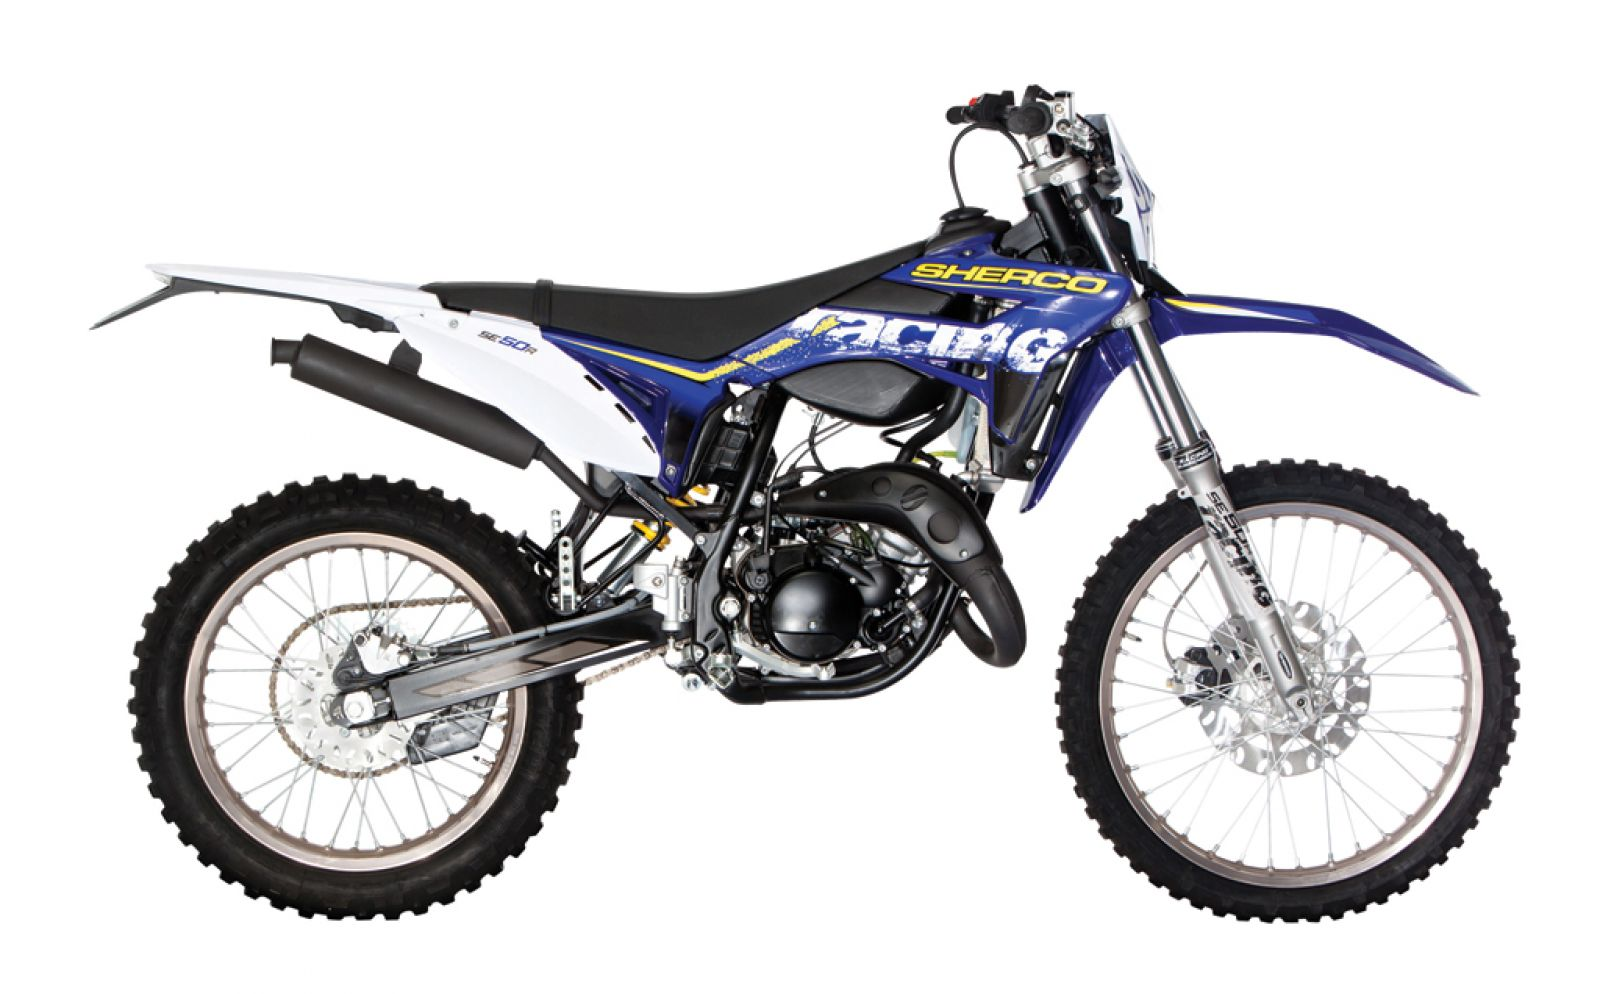 Sherco 125 Enduro Shark Replica images #124639